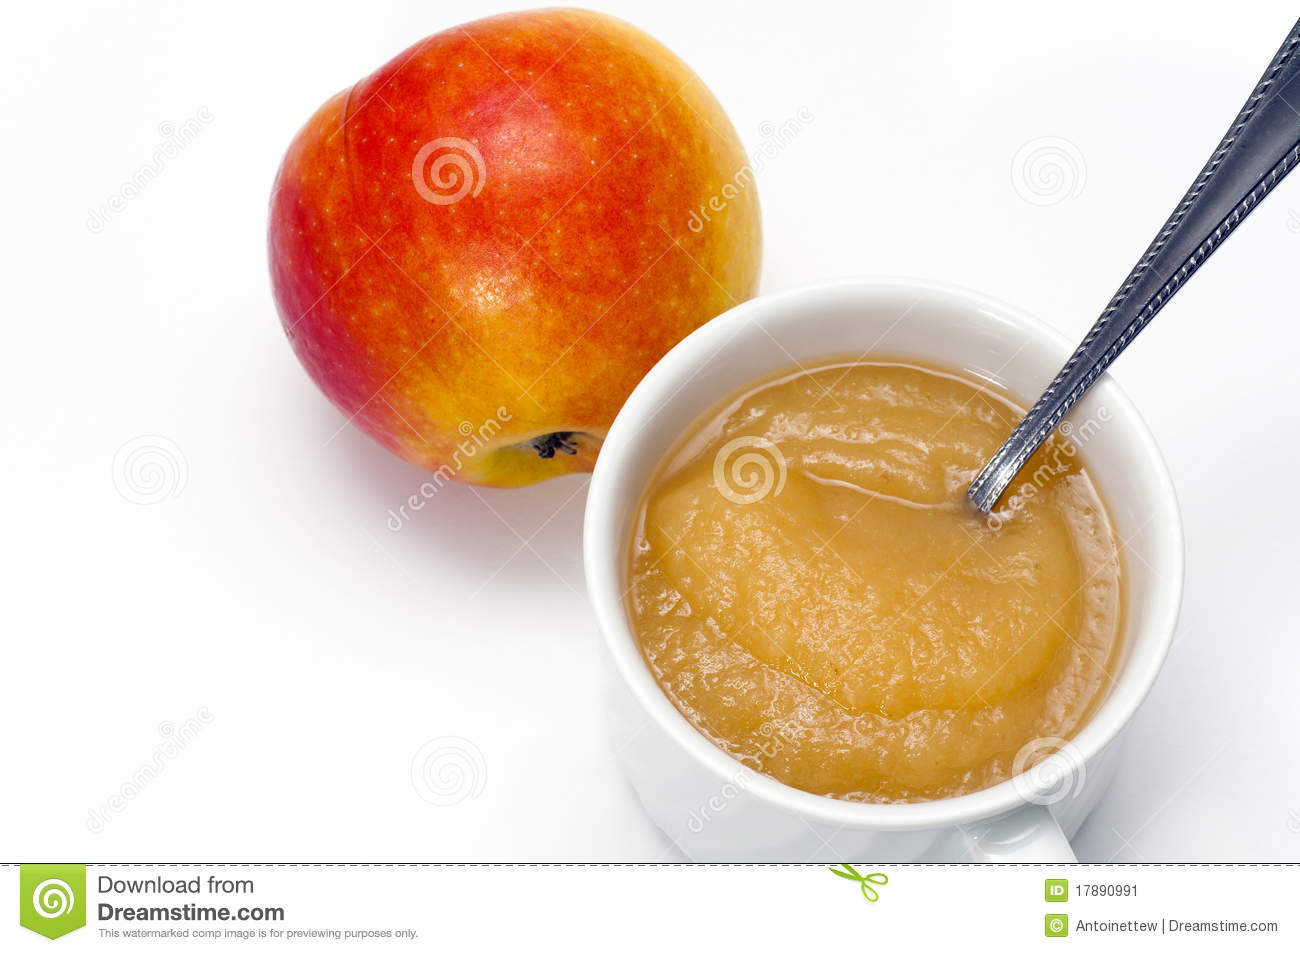 Apple And Delicious Apple Sauce Stock Image - Image: 17890991